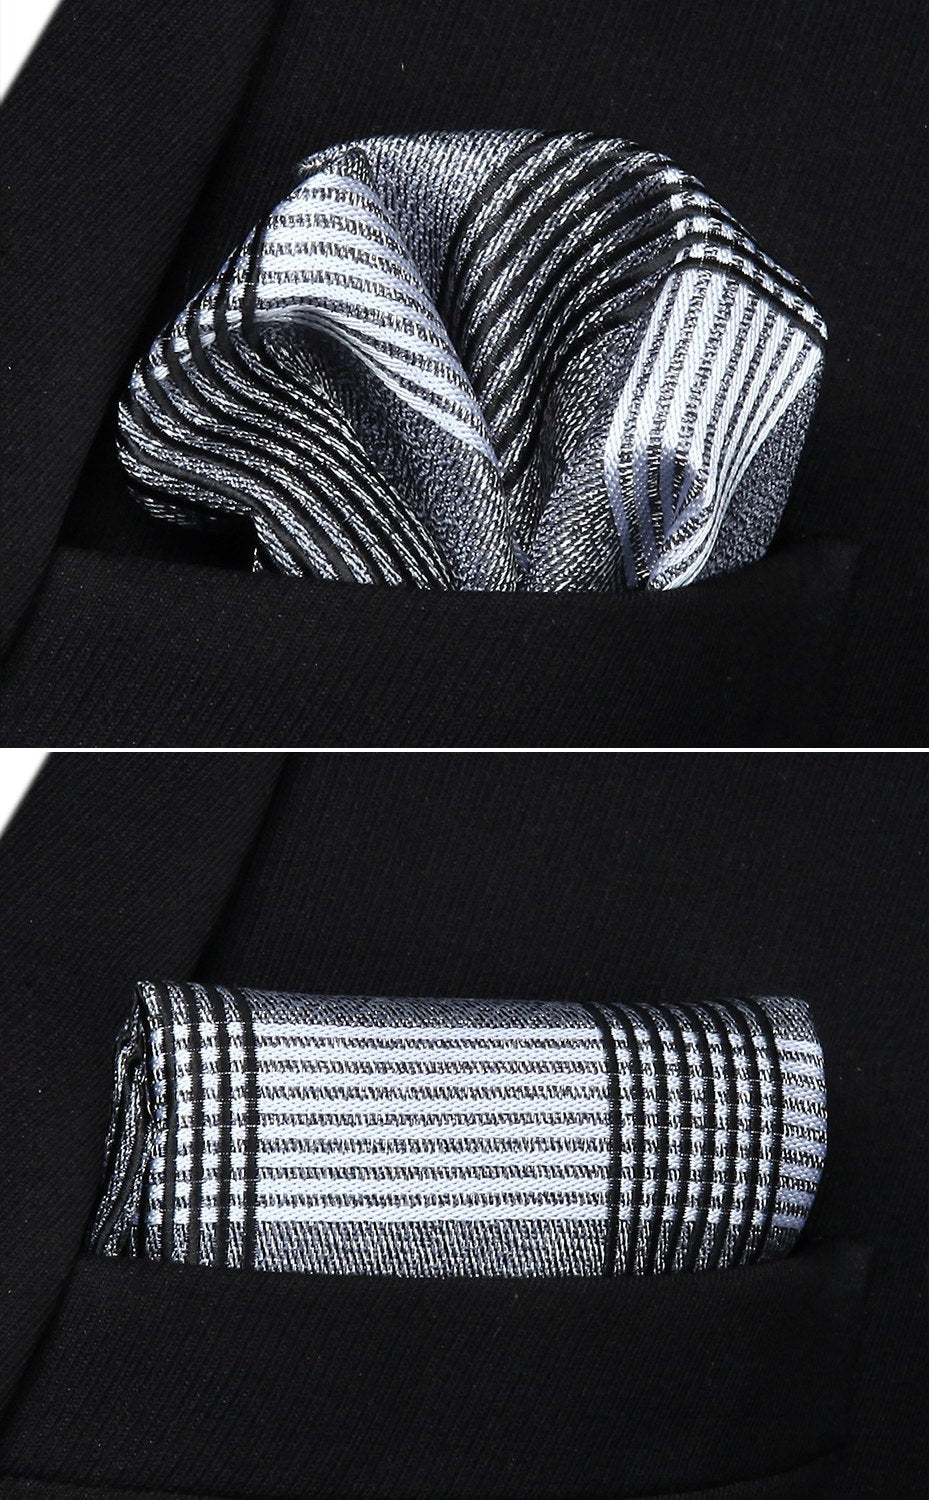 Black and White Tartan Bow Tie and Pocket Square - SOPHGENT